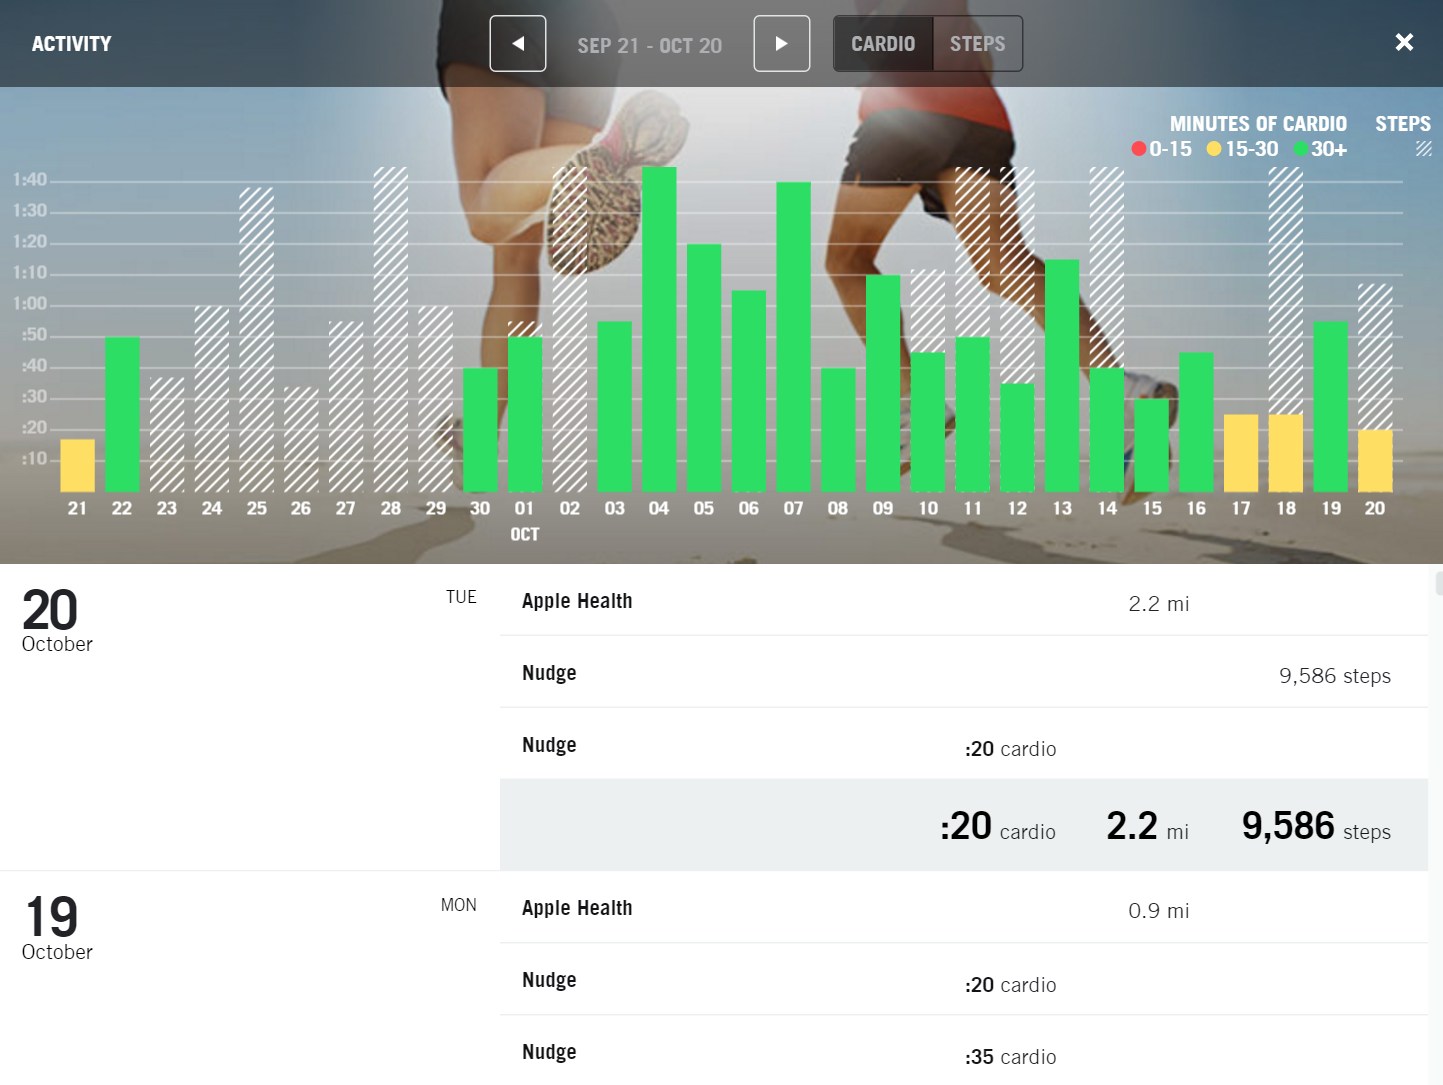 Being able to consistently monitor activity allows you to be proactive and address issues if they arise. In this case, the client's cardio has steadily been decreasing, signalling it may be time for a bit of a pep talk.